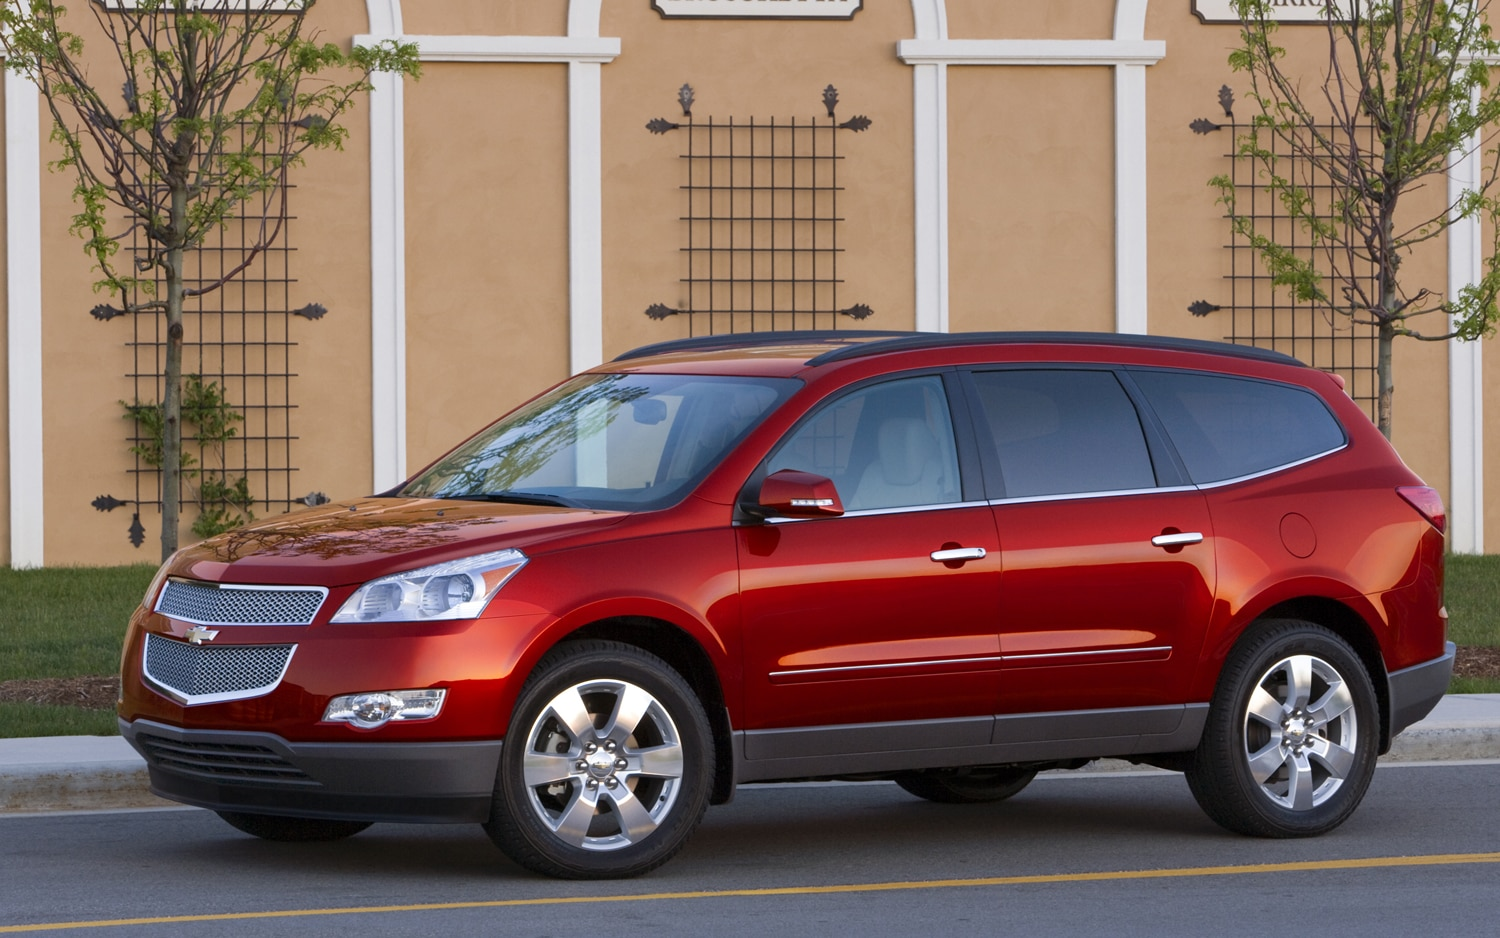 50 000 chevrolet traverse gmc acadia buick enclave models recalled for wipers. Black Bedroom Furniture Sets. Home Design Ideas